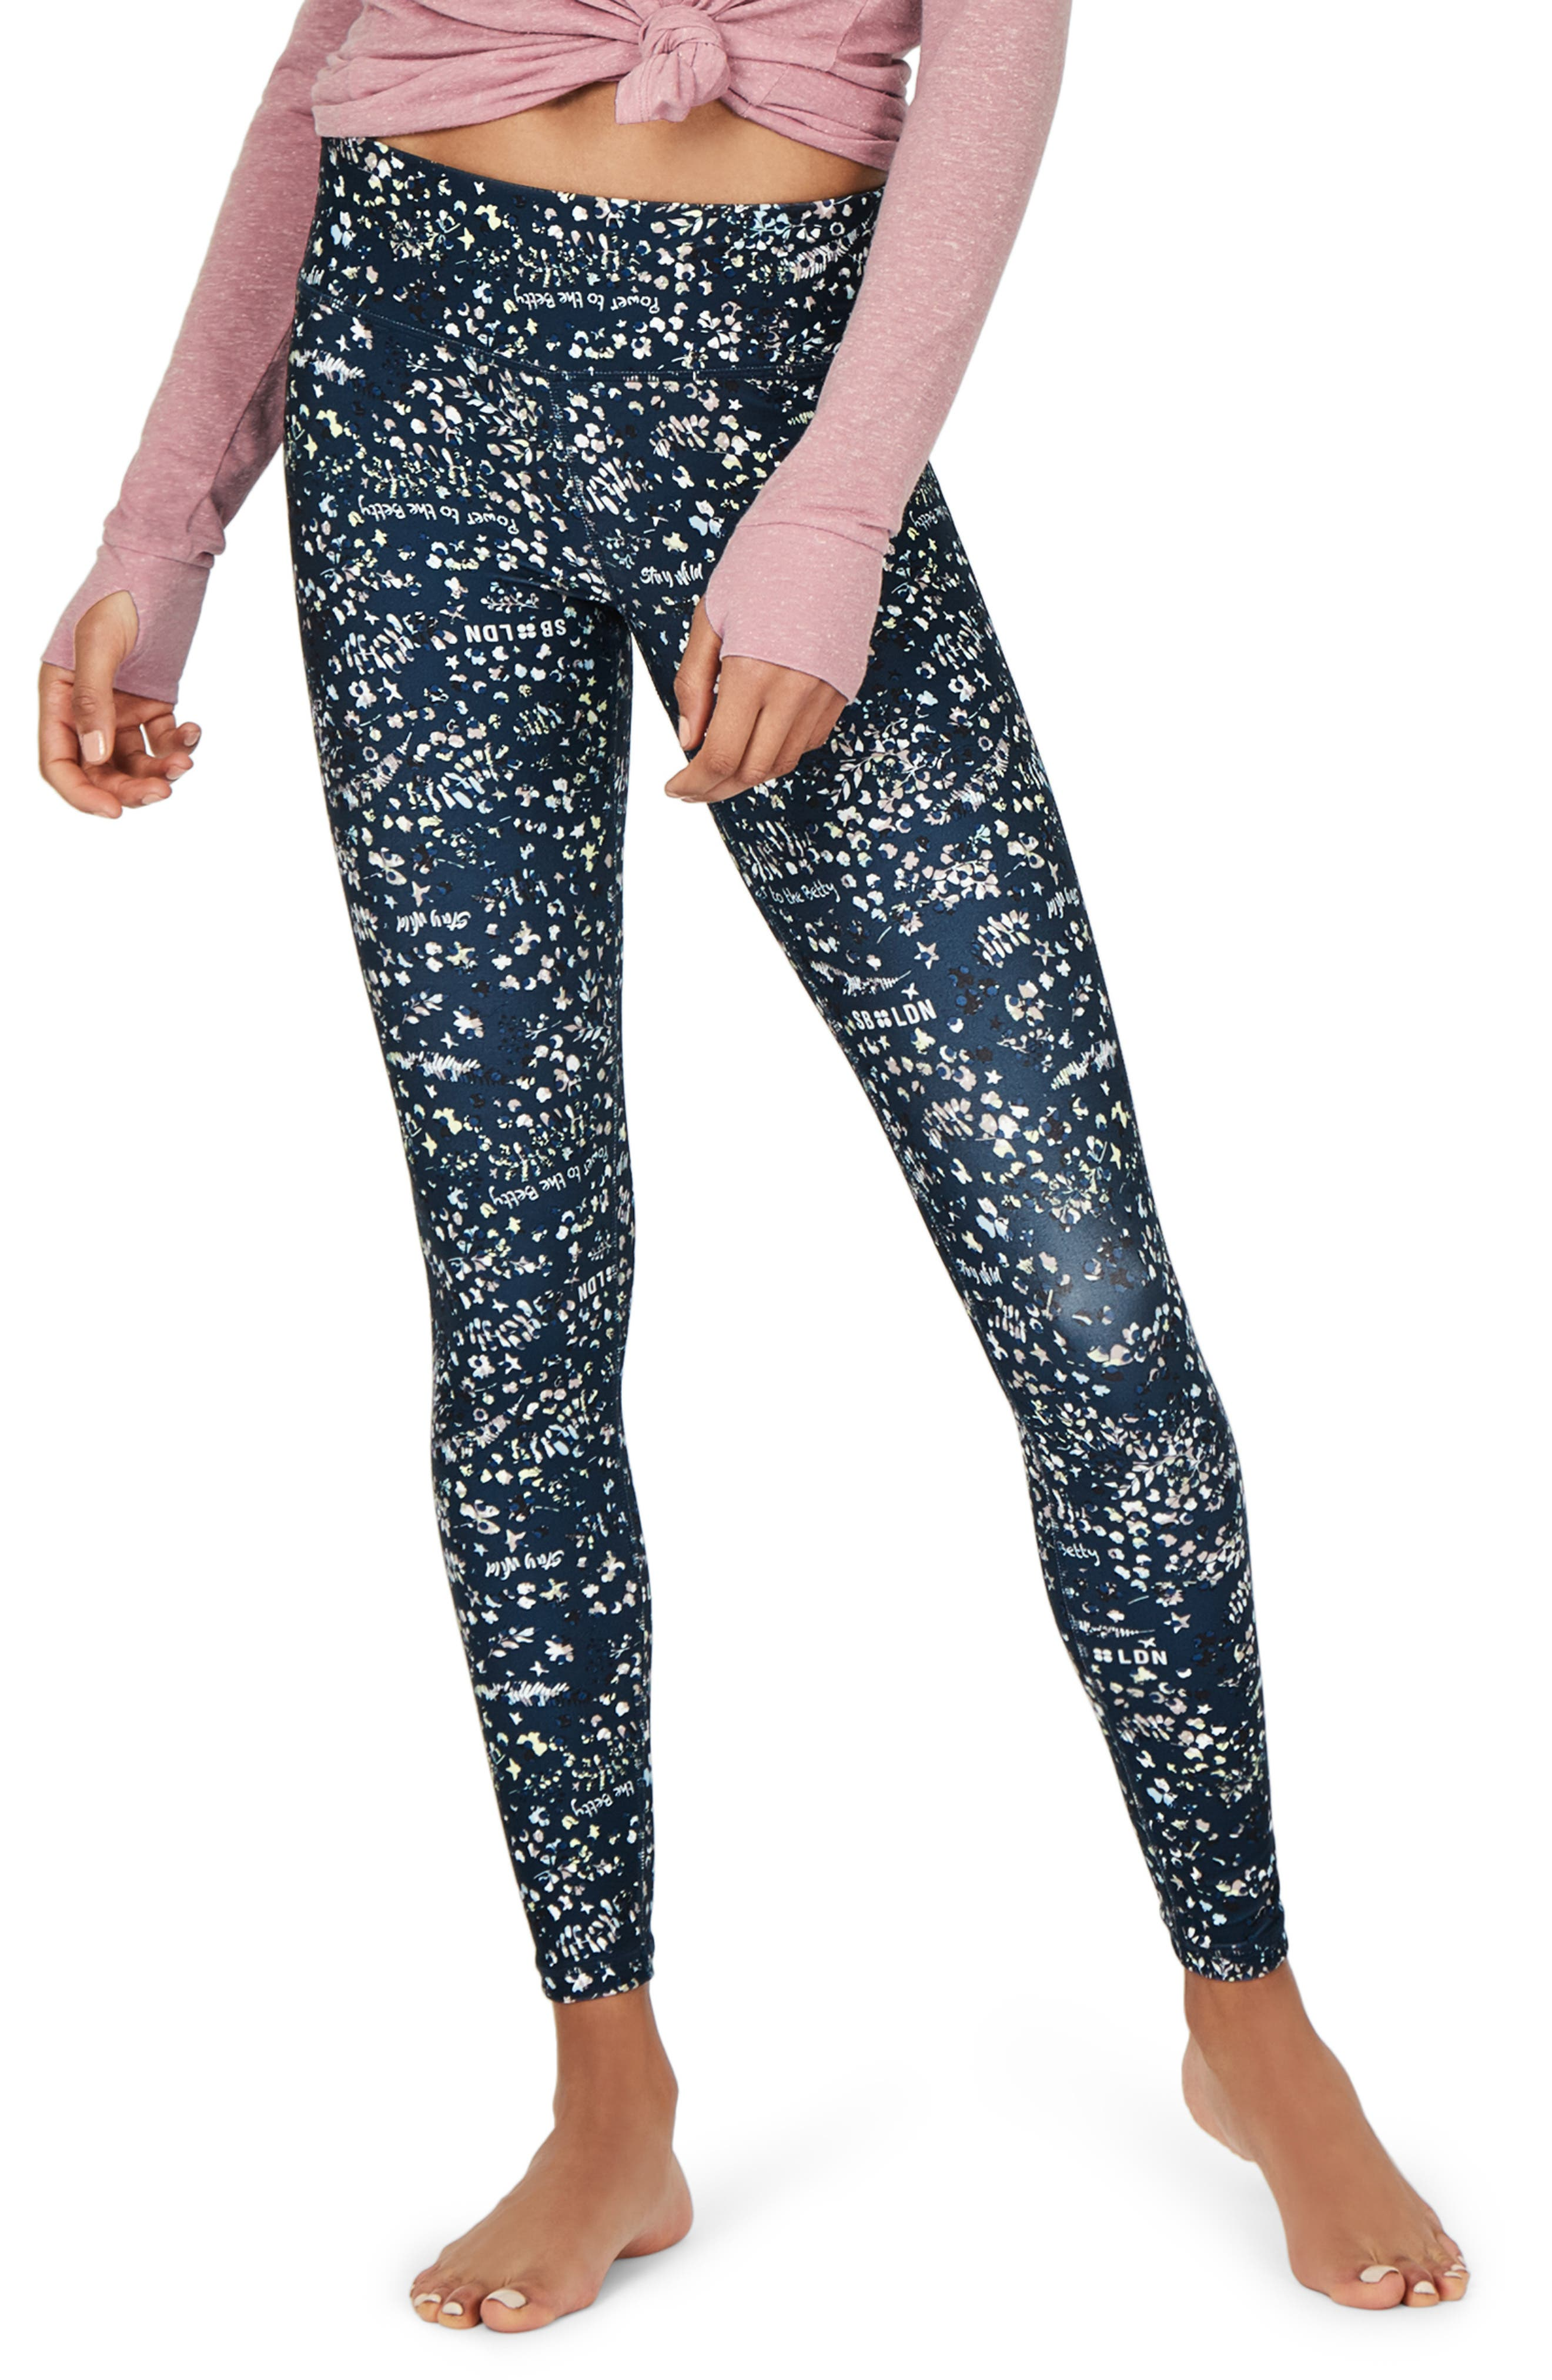 SWEATY BETTY Contour Leggings, Main, color, BEETLE BLUE STAY WILD PRINT